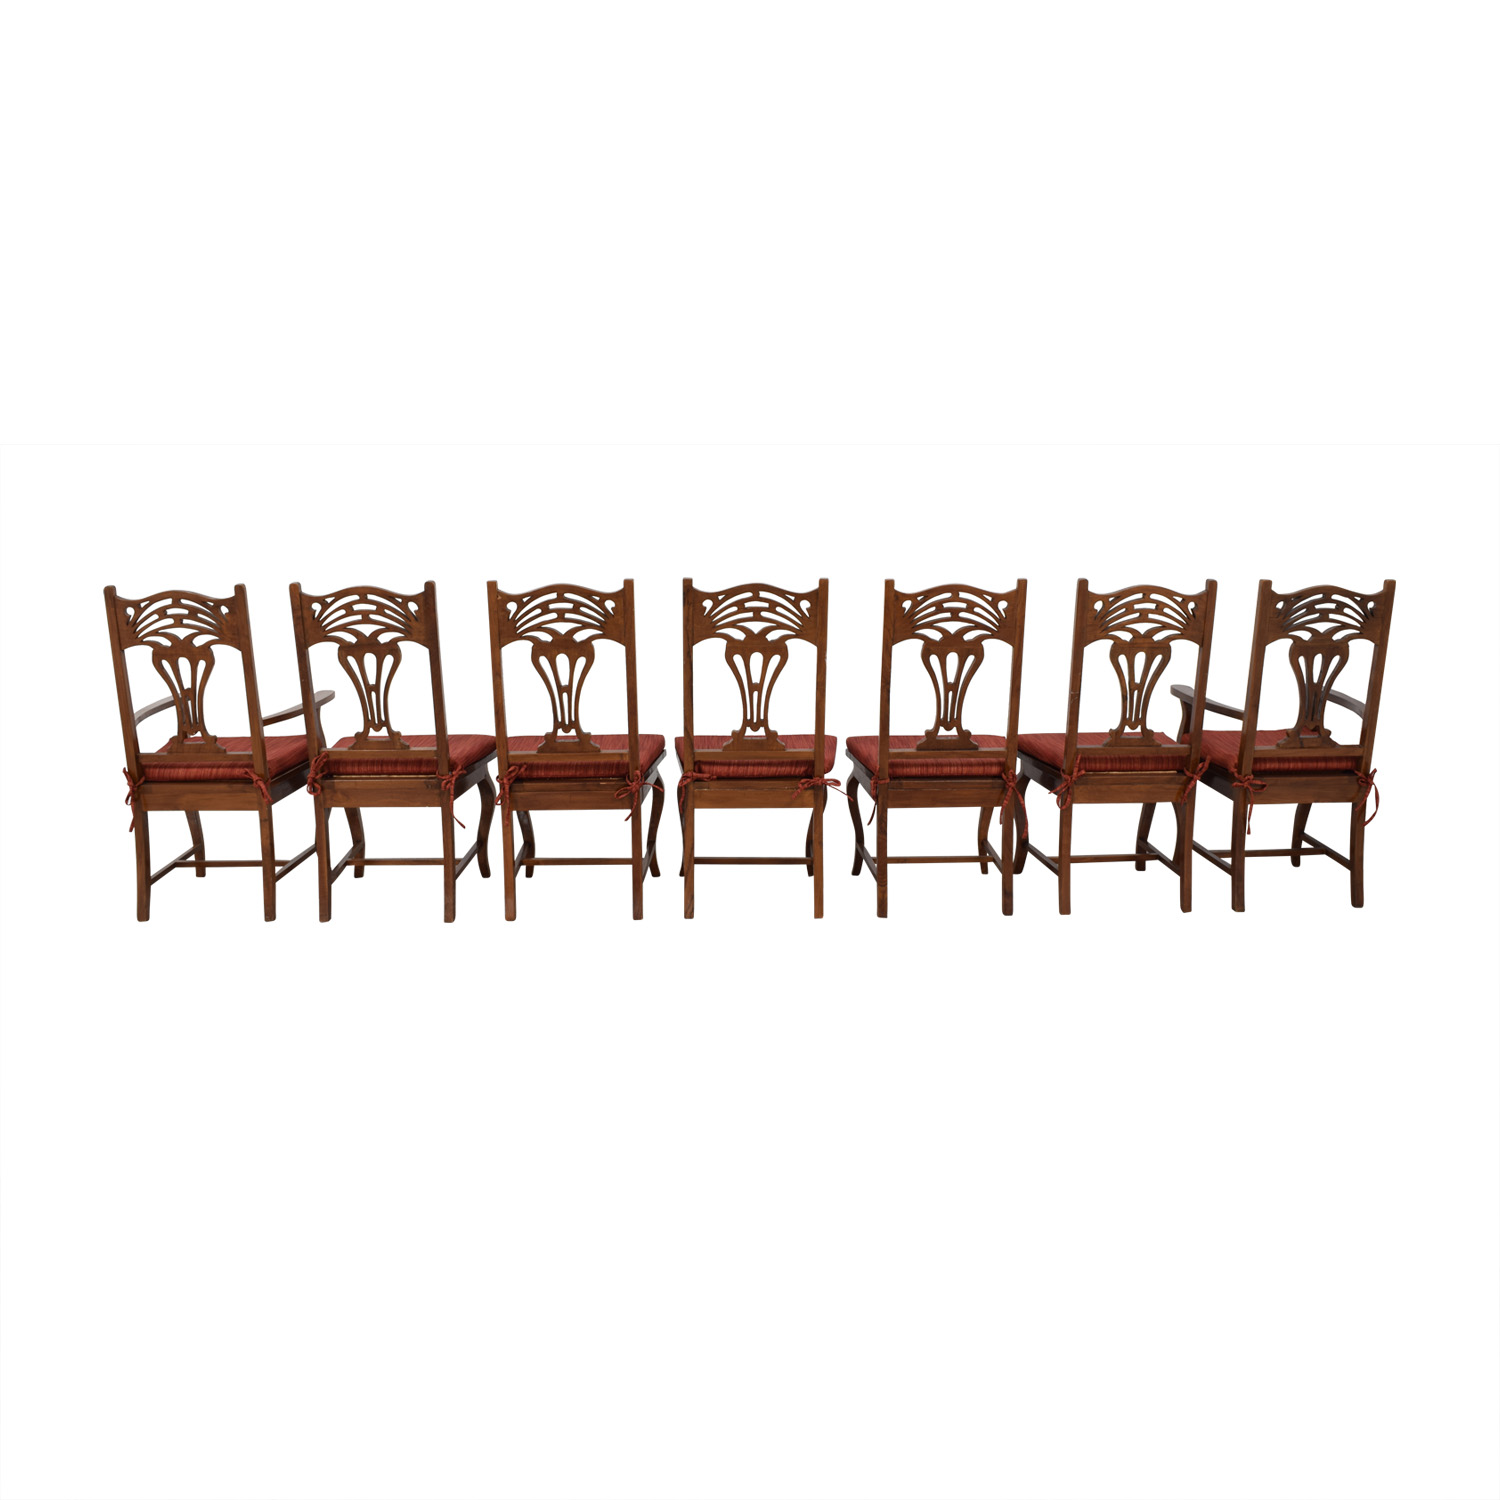 buy Custom Set of Dining Room Chairs